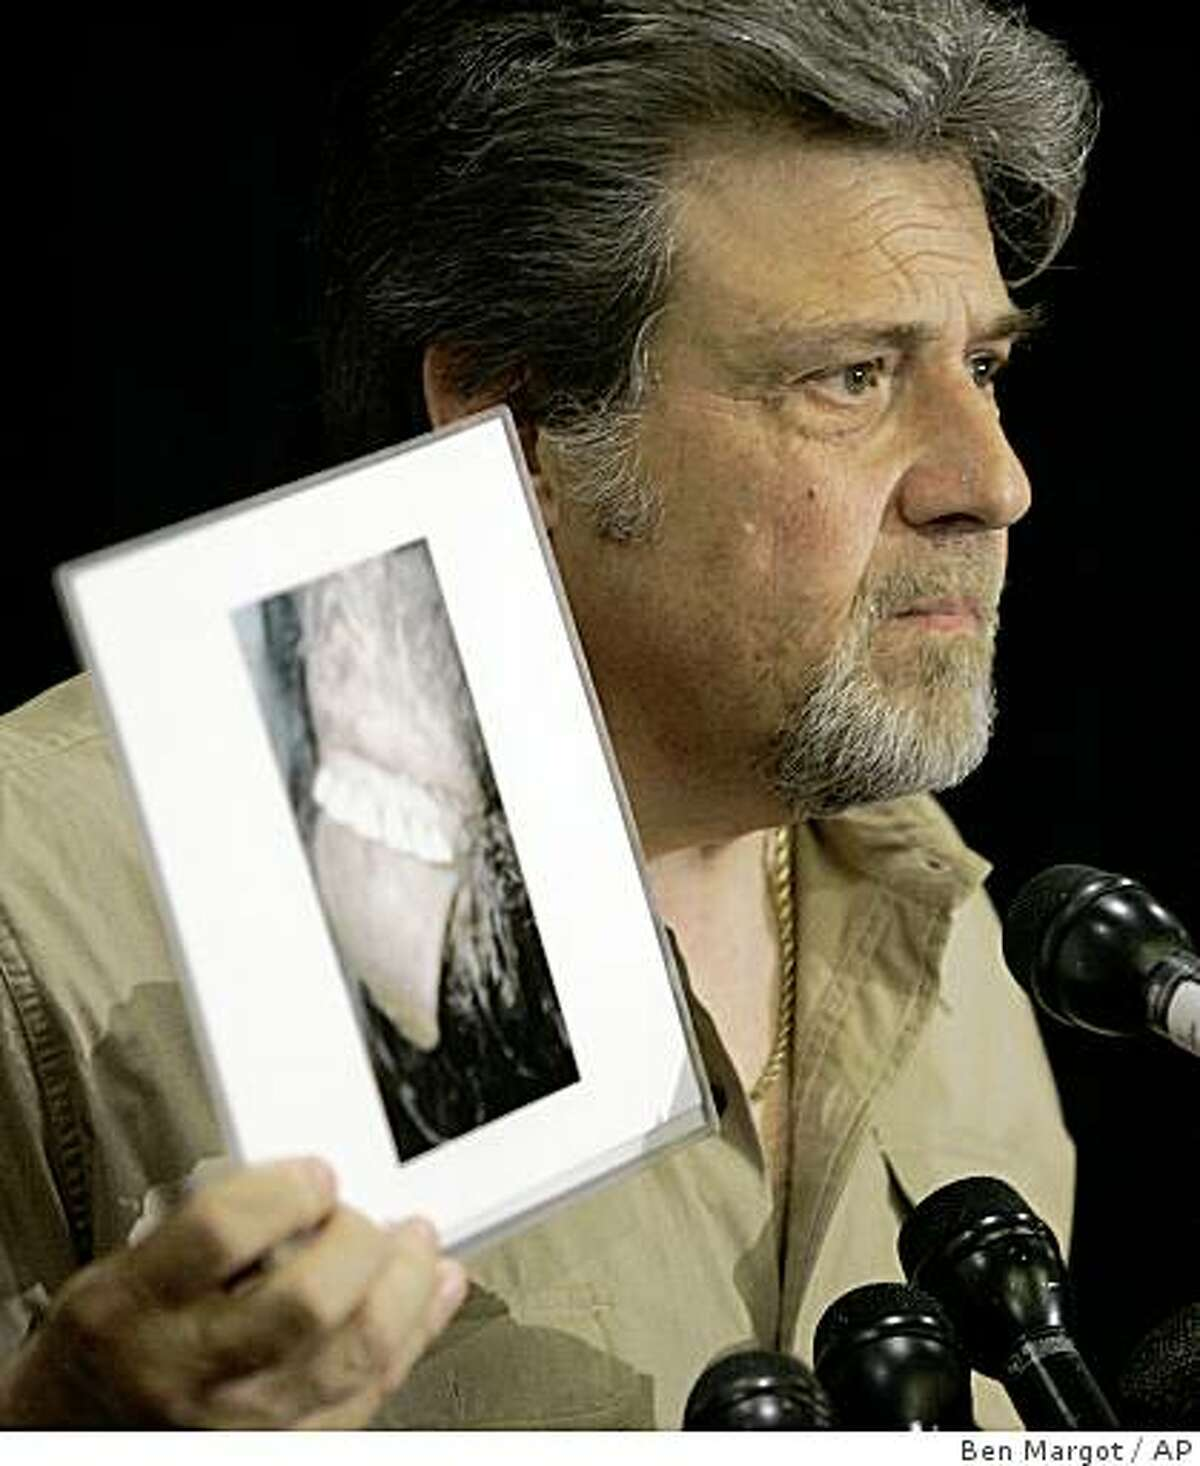 Bigfoot hunter Tom Biscardi holds a photo of what he claims to be the mouth and teeth of a deceased bigfoot or sasquatch creature during a news conference Friday, Aug. 15, 2008, in Palo Alto, Calif. (AP Photo/Ben Margot)